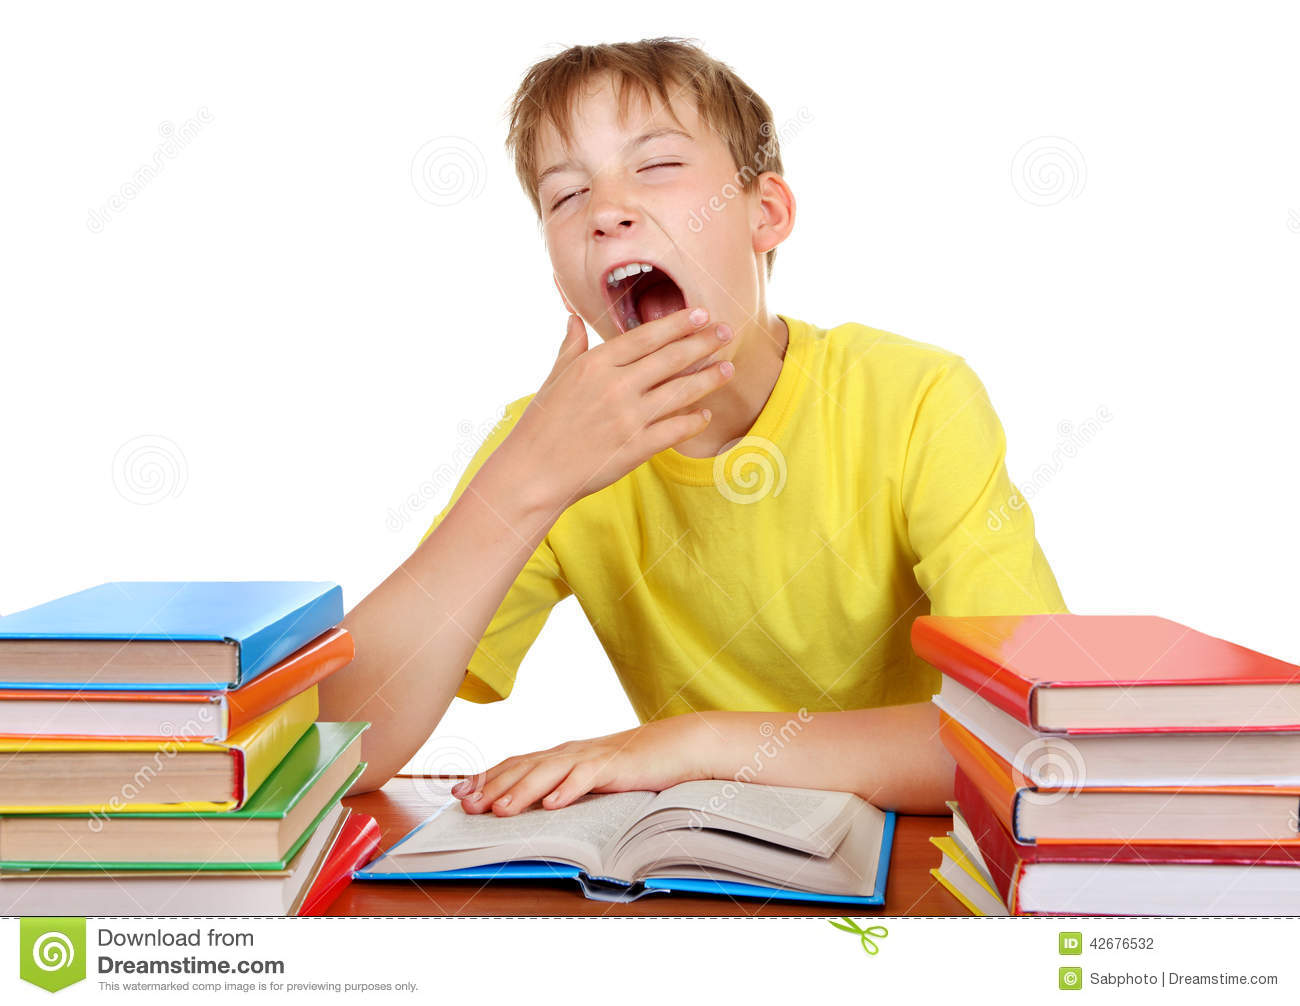 ... Kid Yawning at the School Desk with a Books on the white background